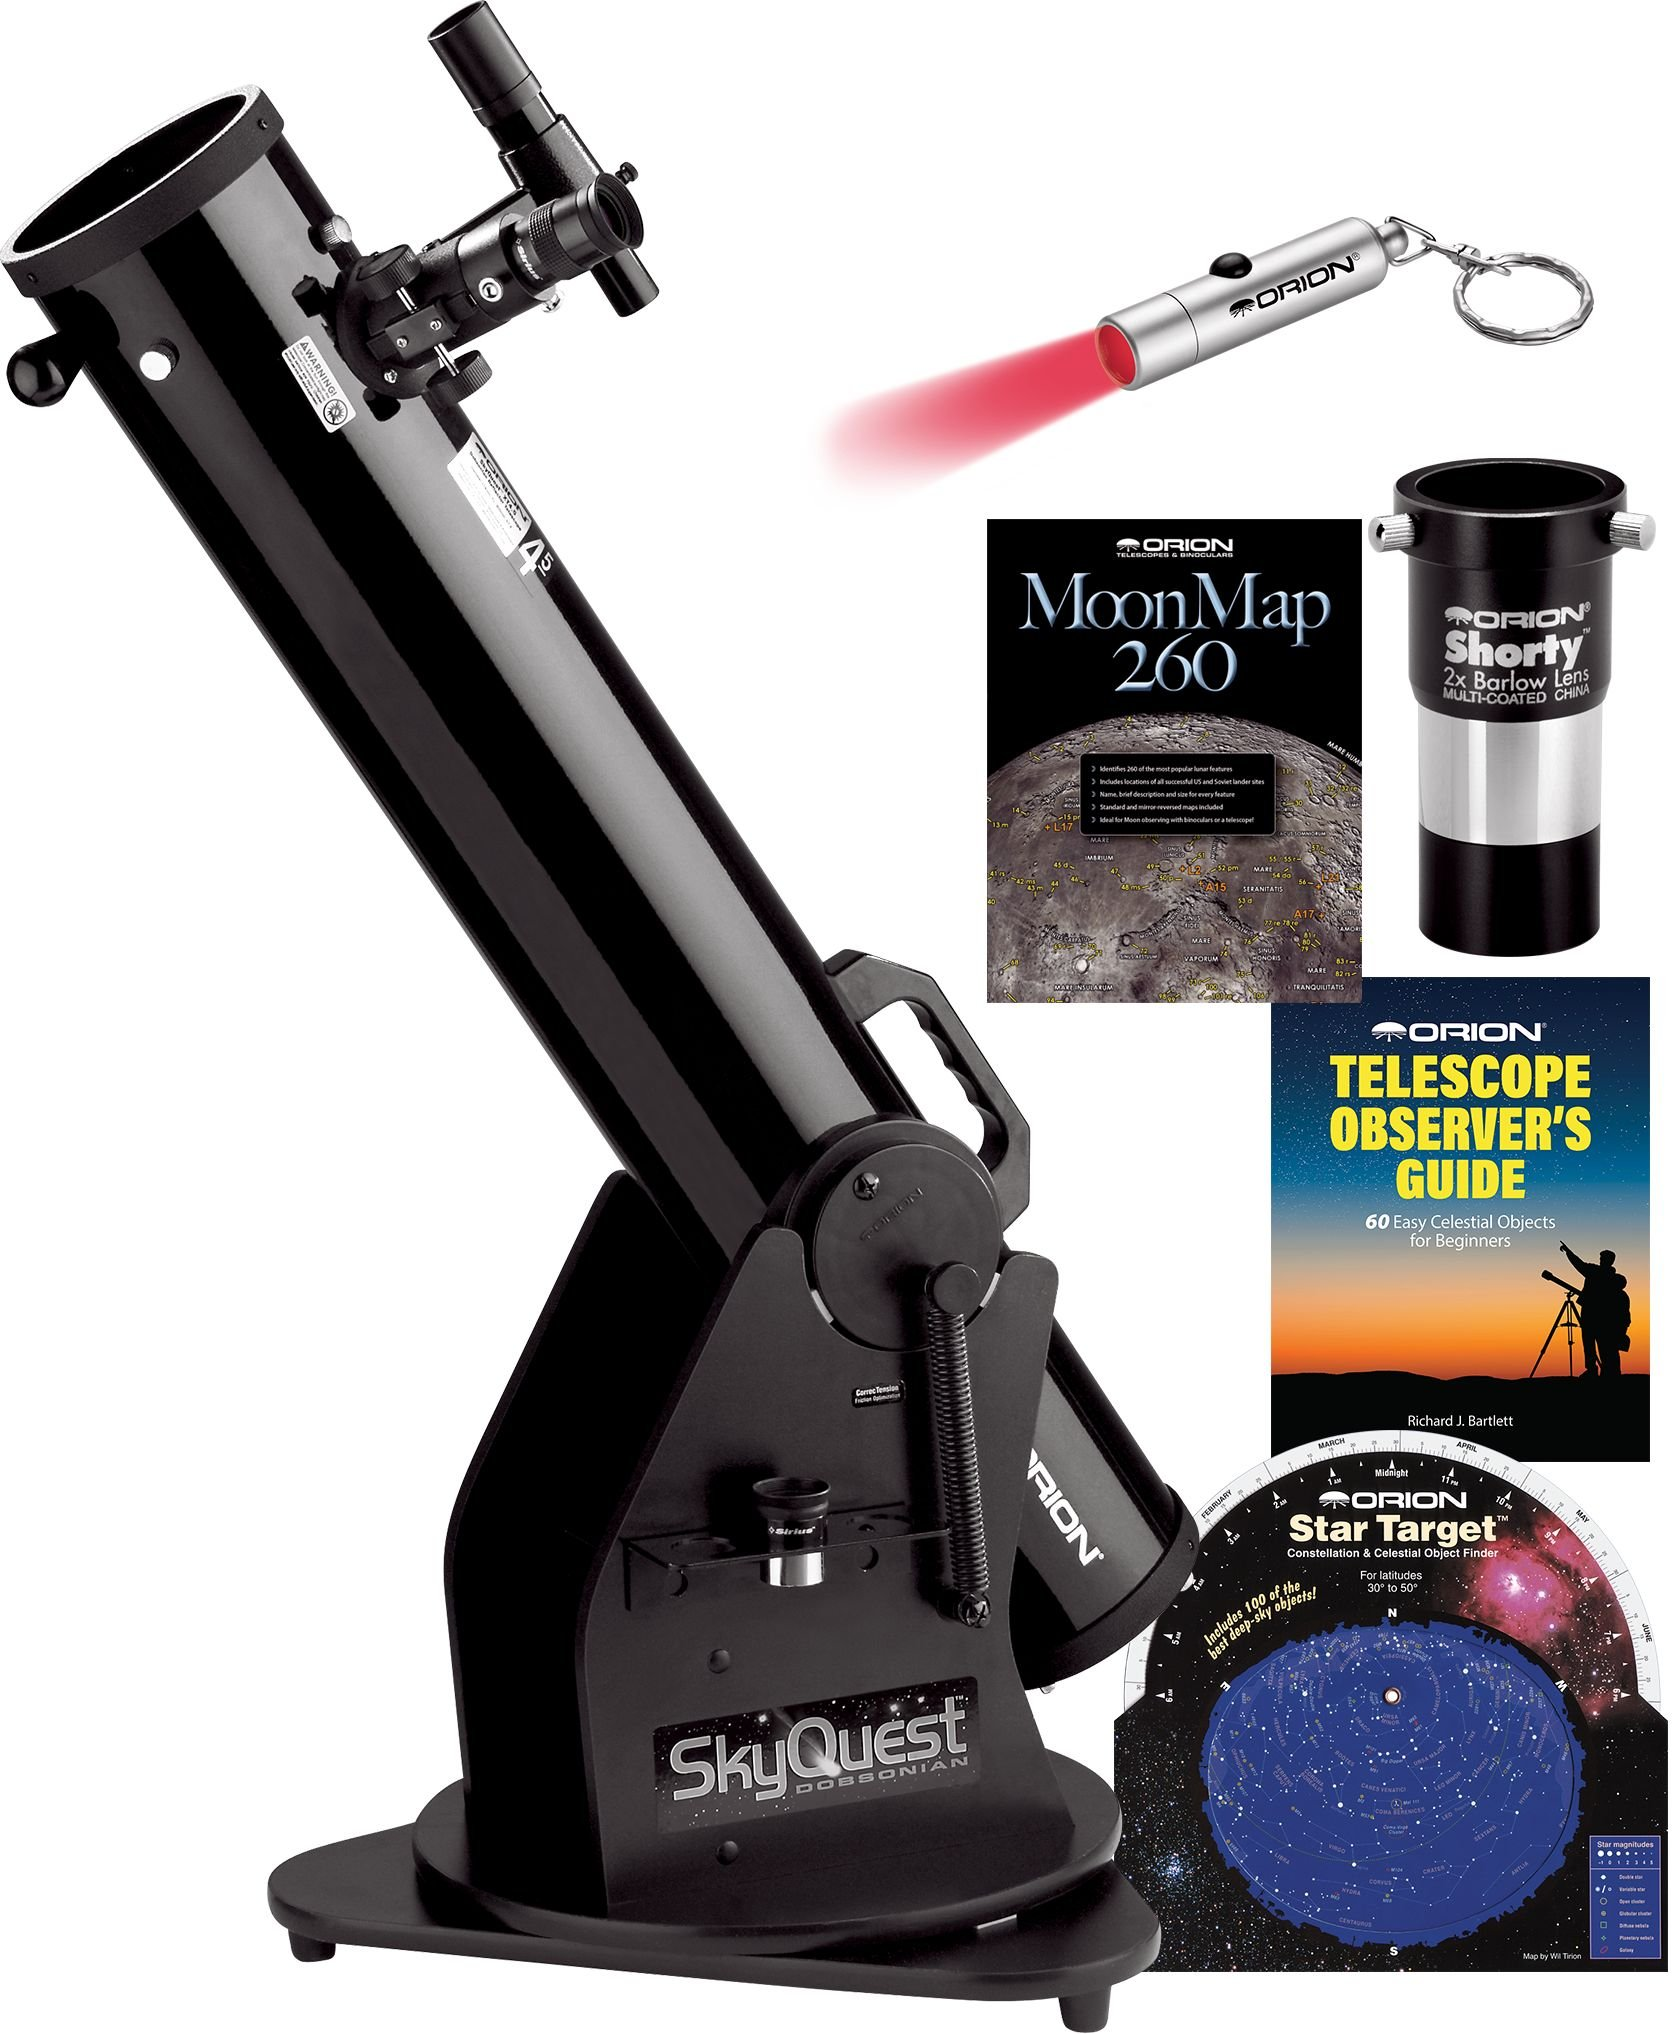 Orion SkyQuest XT4.5 Classic Dobsonian Telescope Kit by Orion